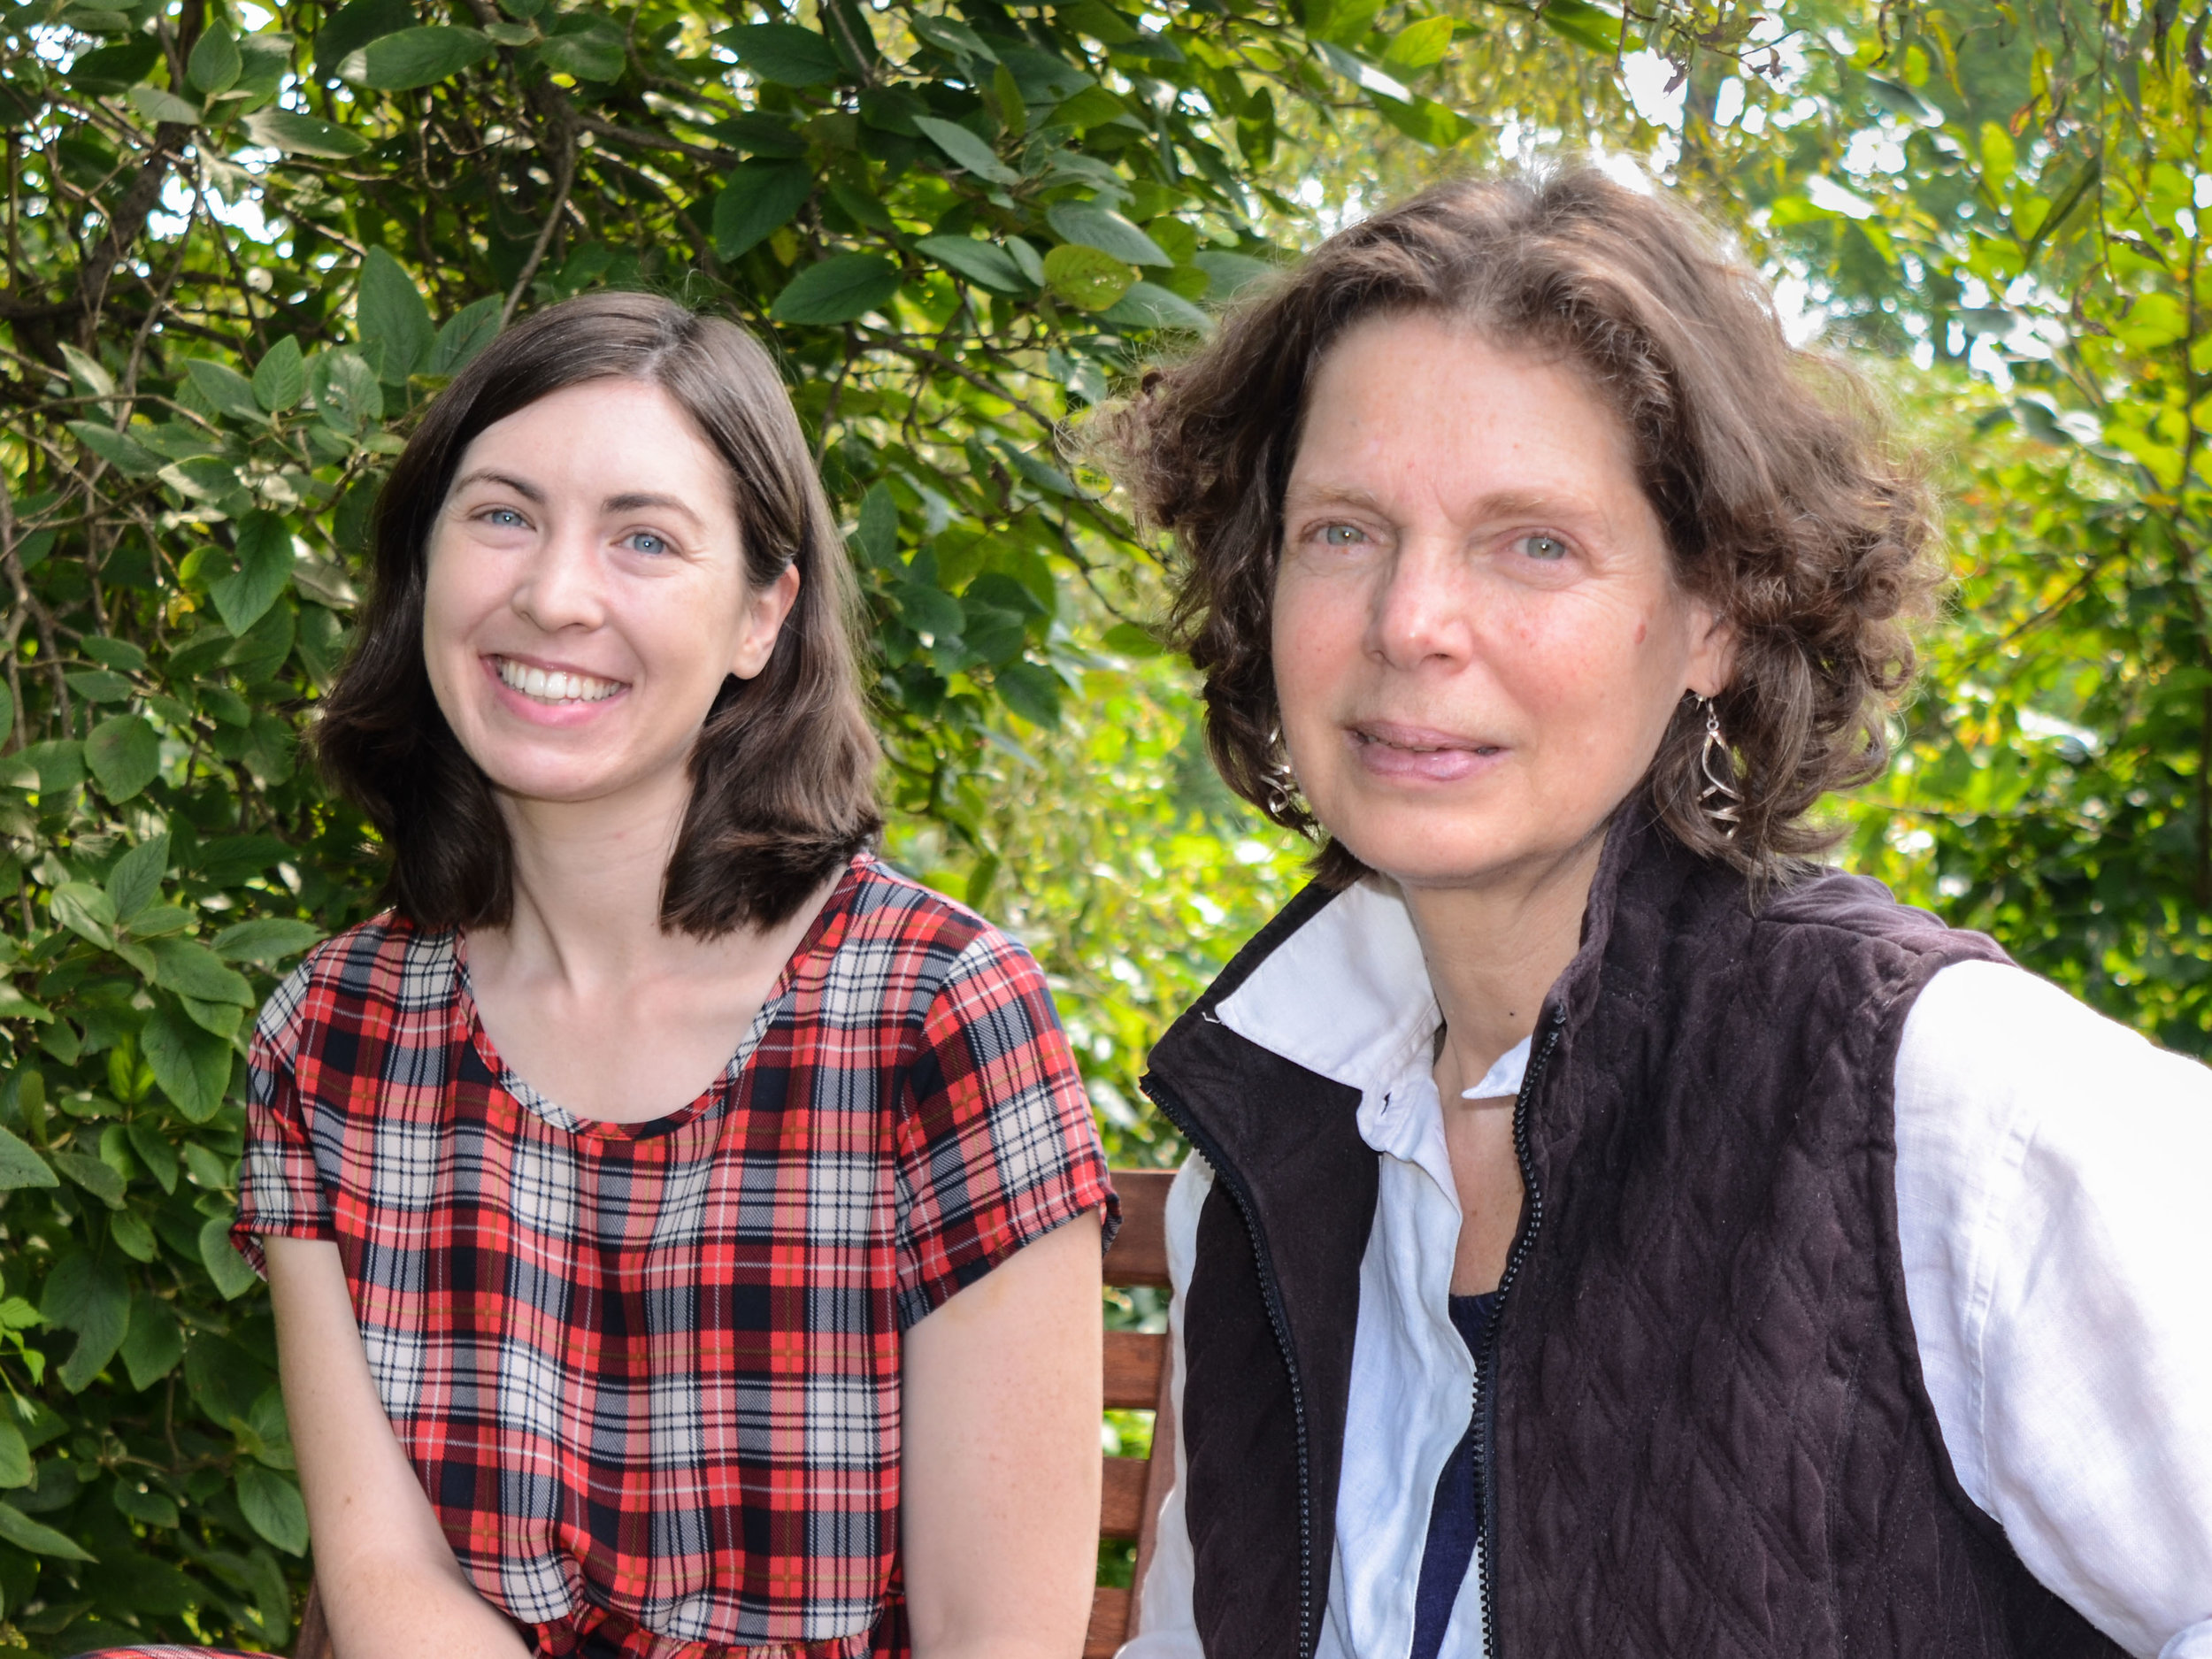 Left to right: Writing Program Coordinator Staff-Artist Andrea Martin and Writing Program Manager Jody Gladding